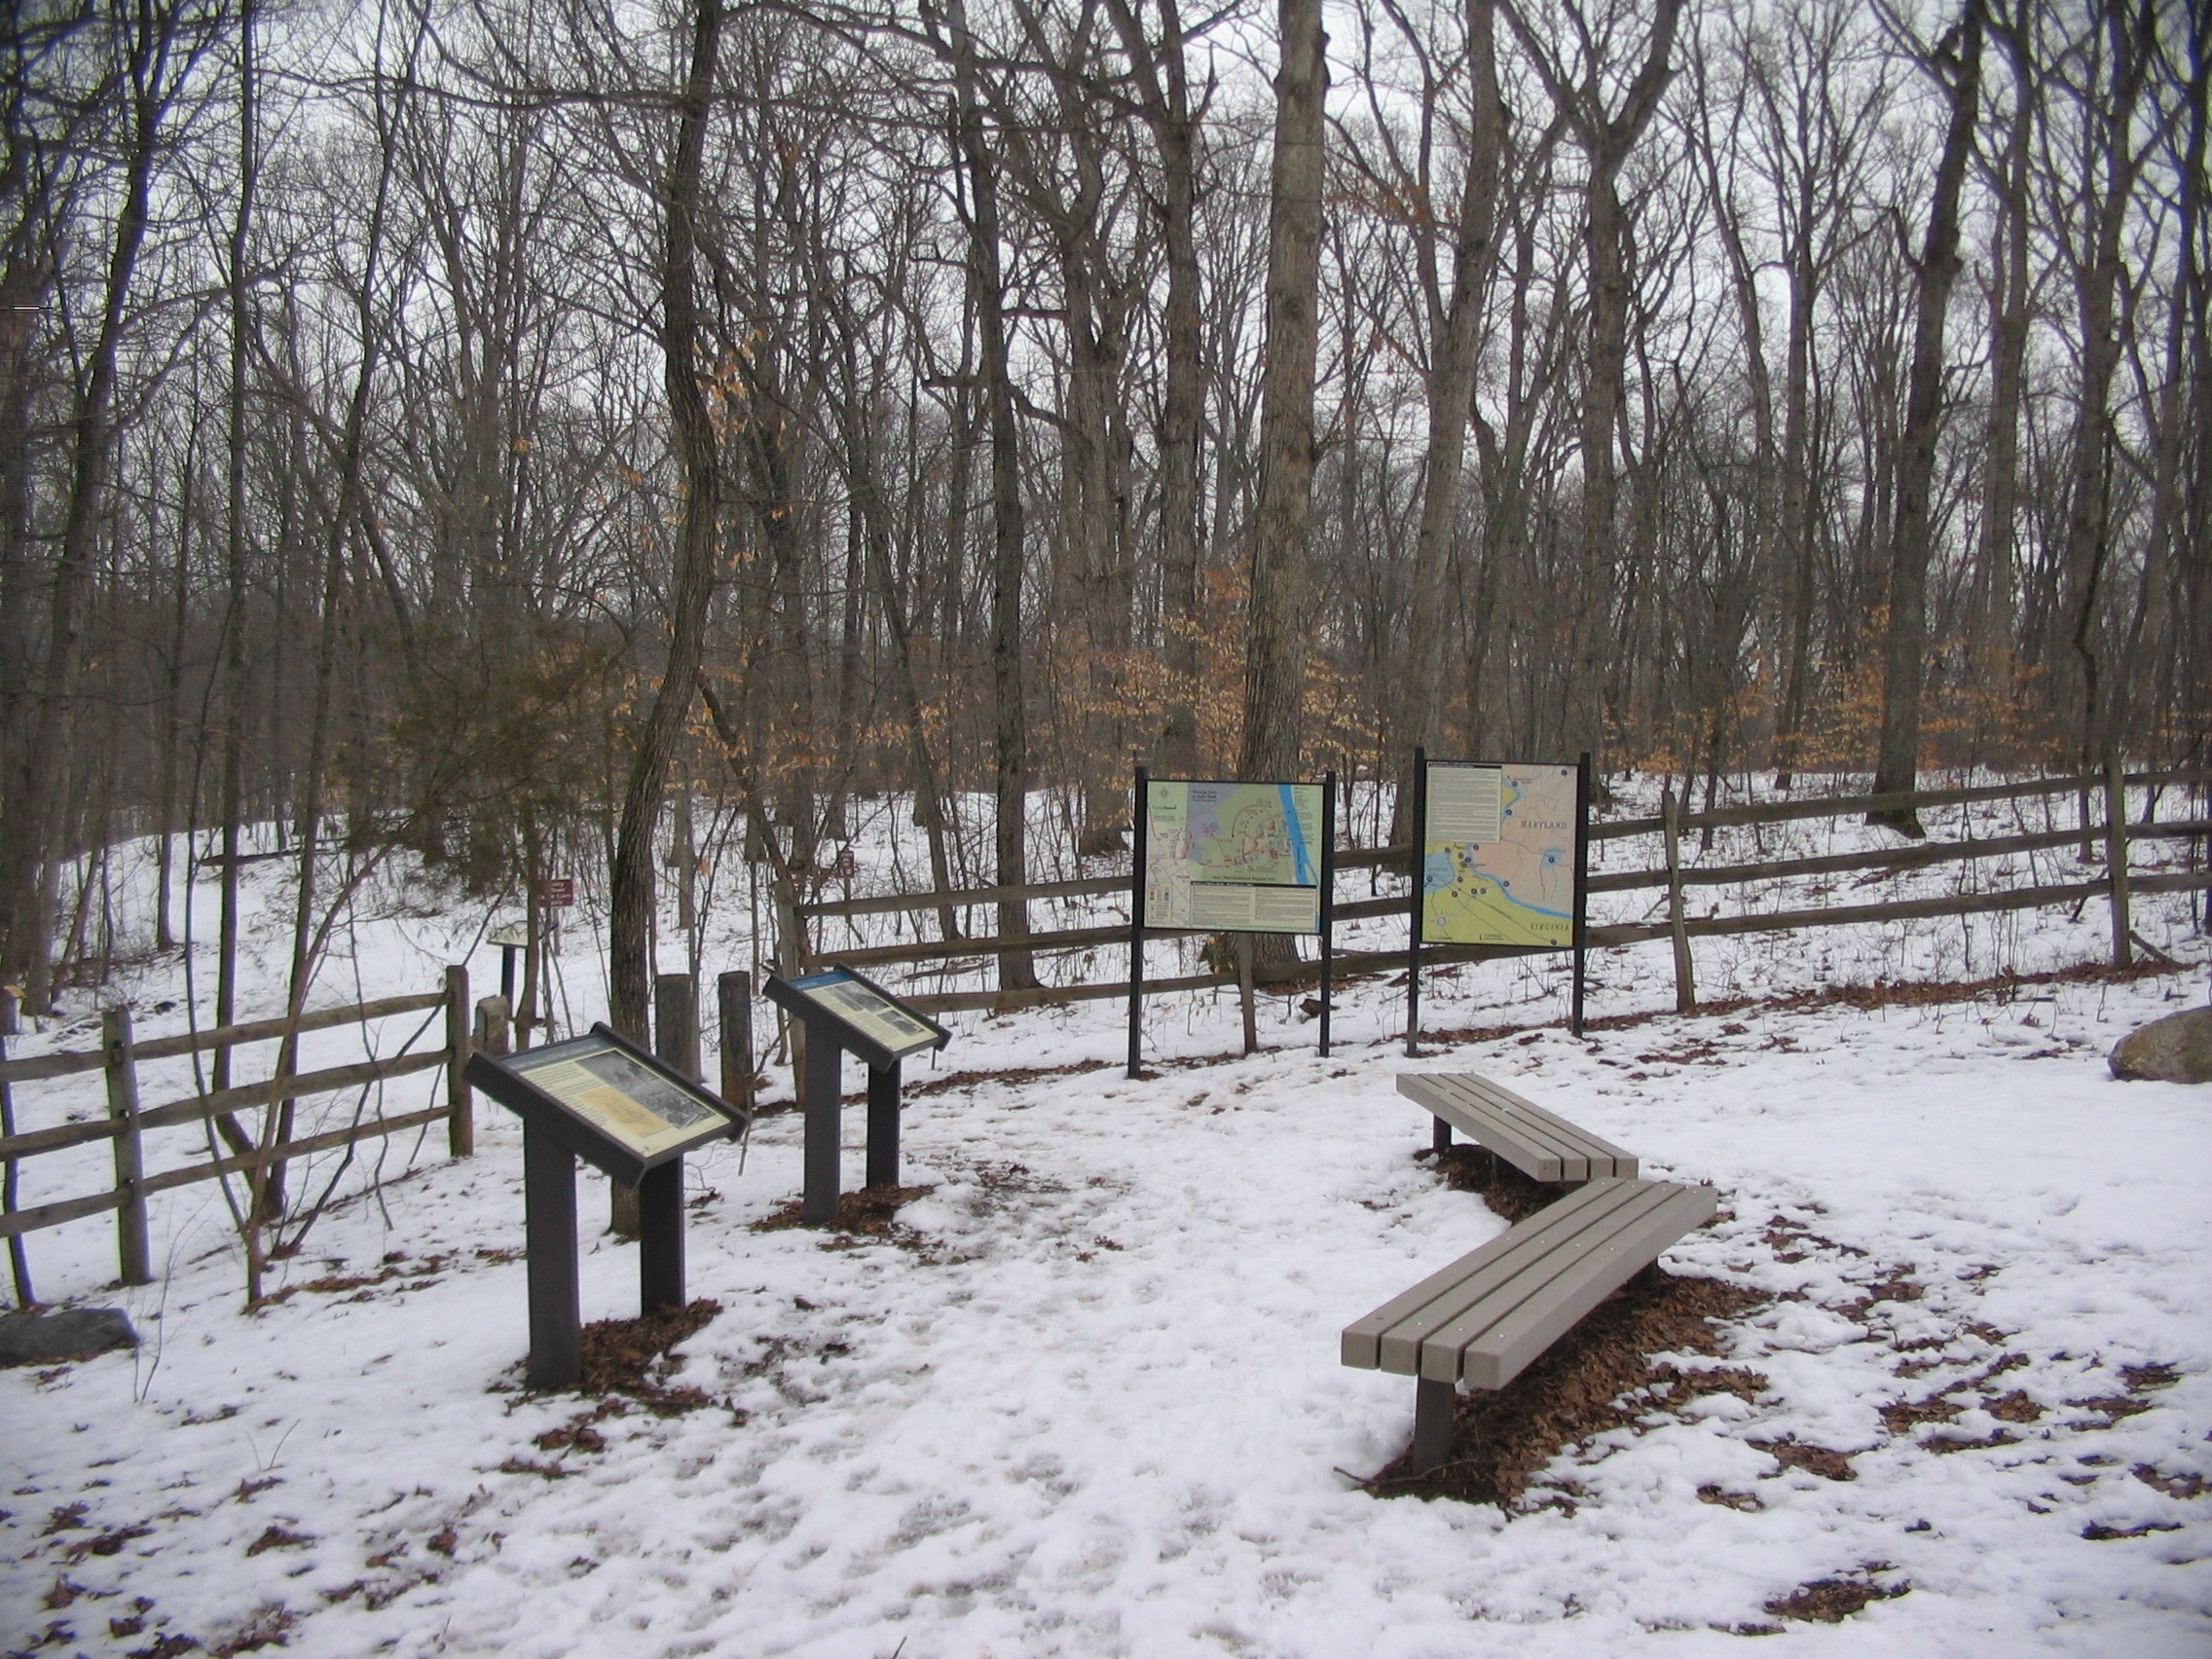 Markers at the Trailhead for Balls Bluff